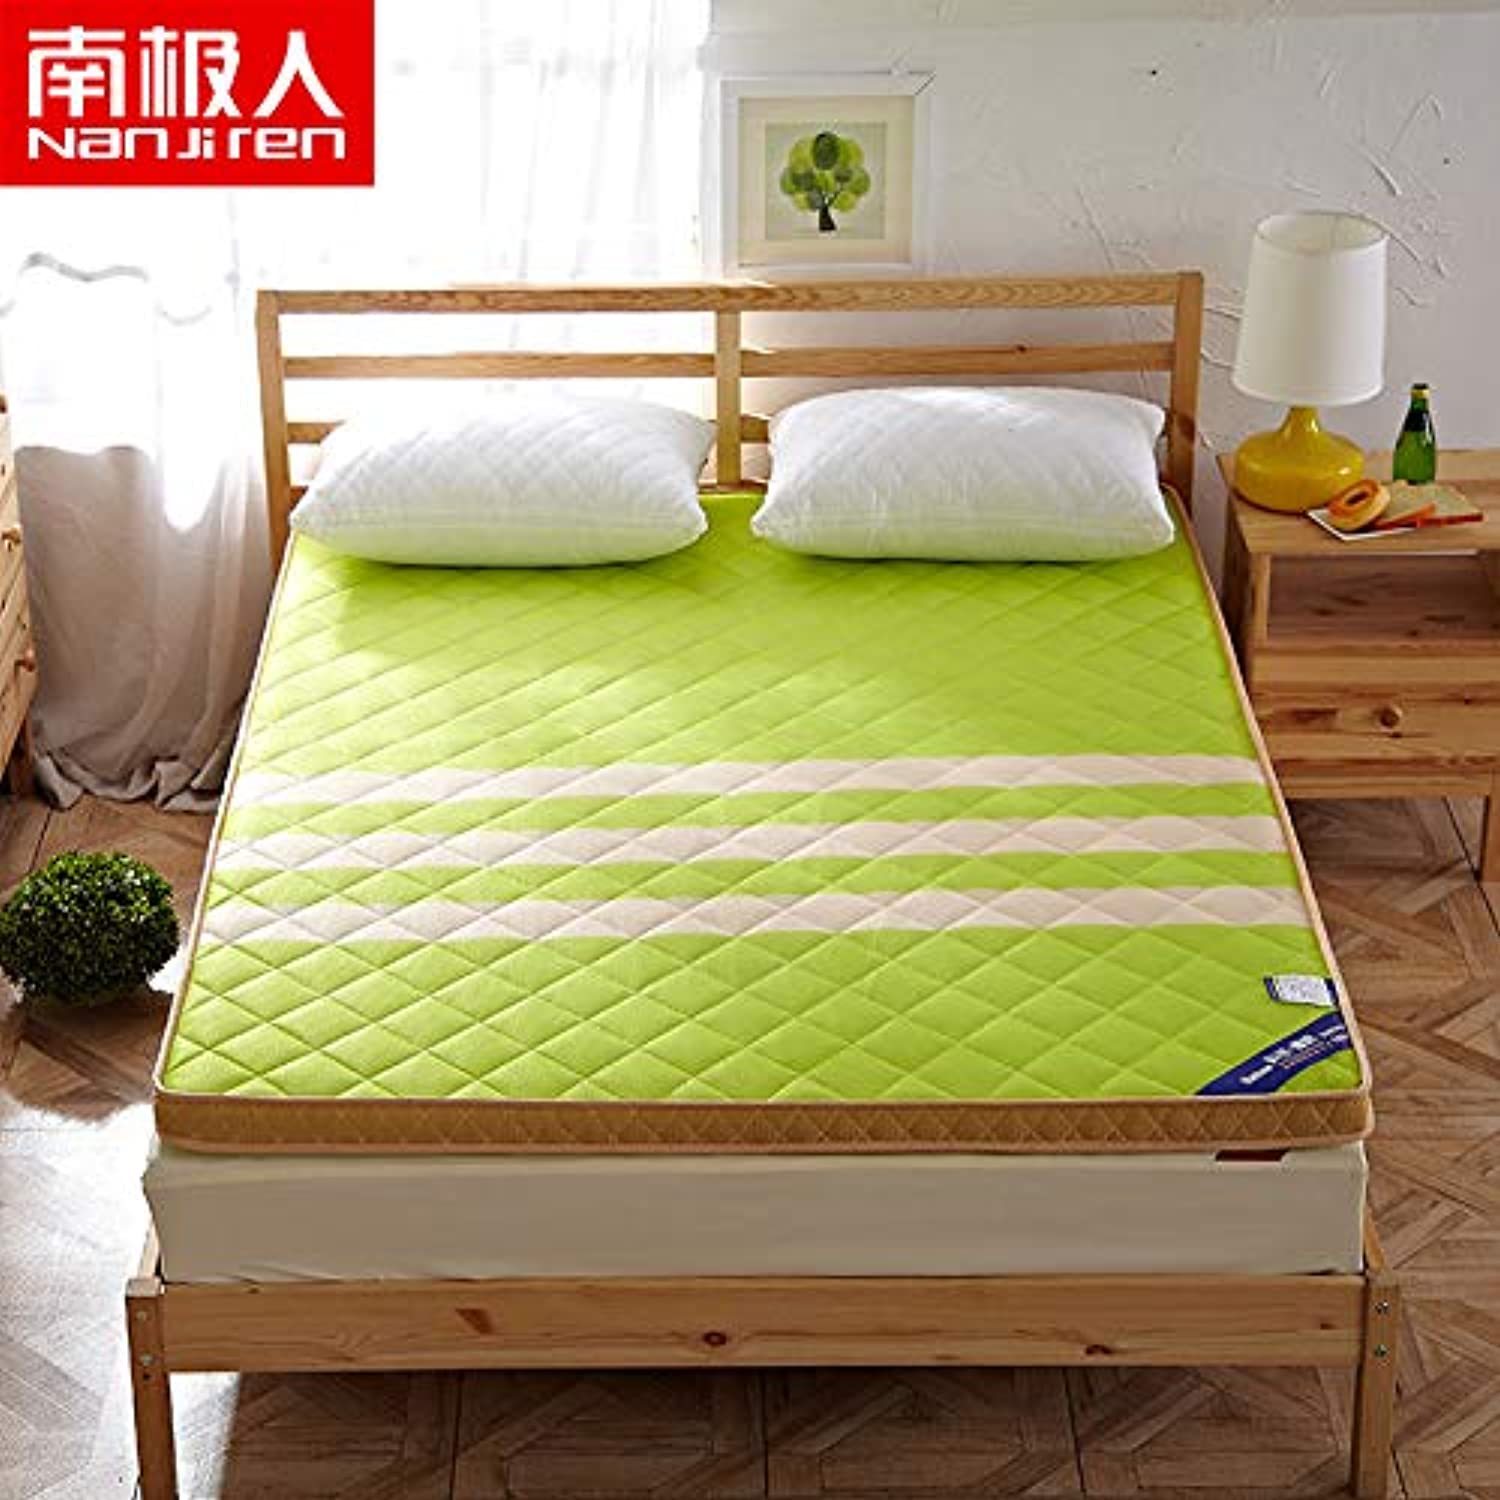 The New Four Seasons General Thicker Sandwich Mattress Tatami Sleeping on a Comfortable Mattress Breathable mesh Floor Mattress